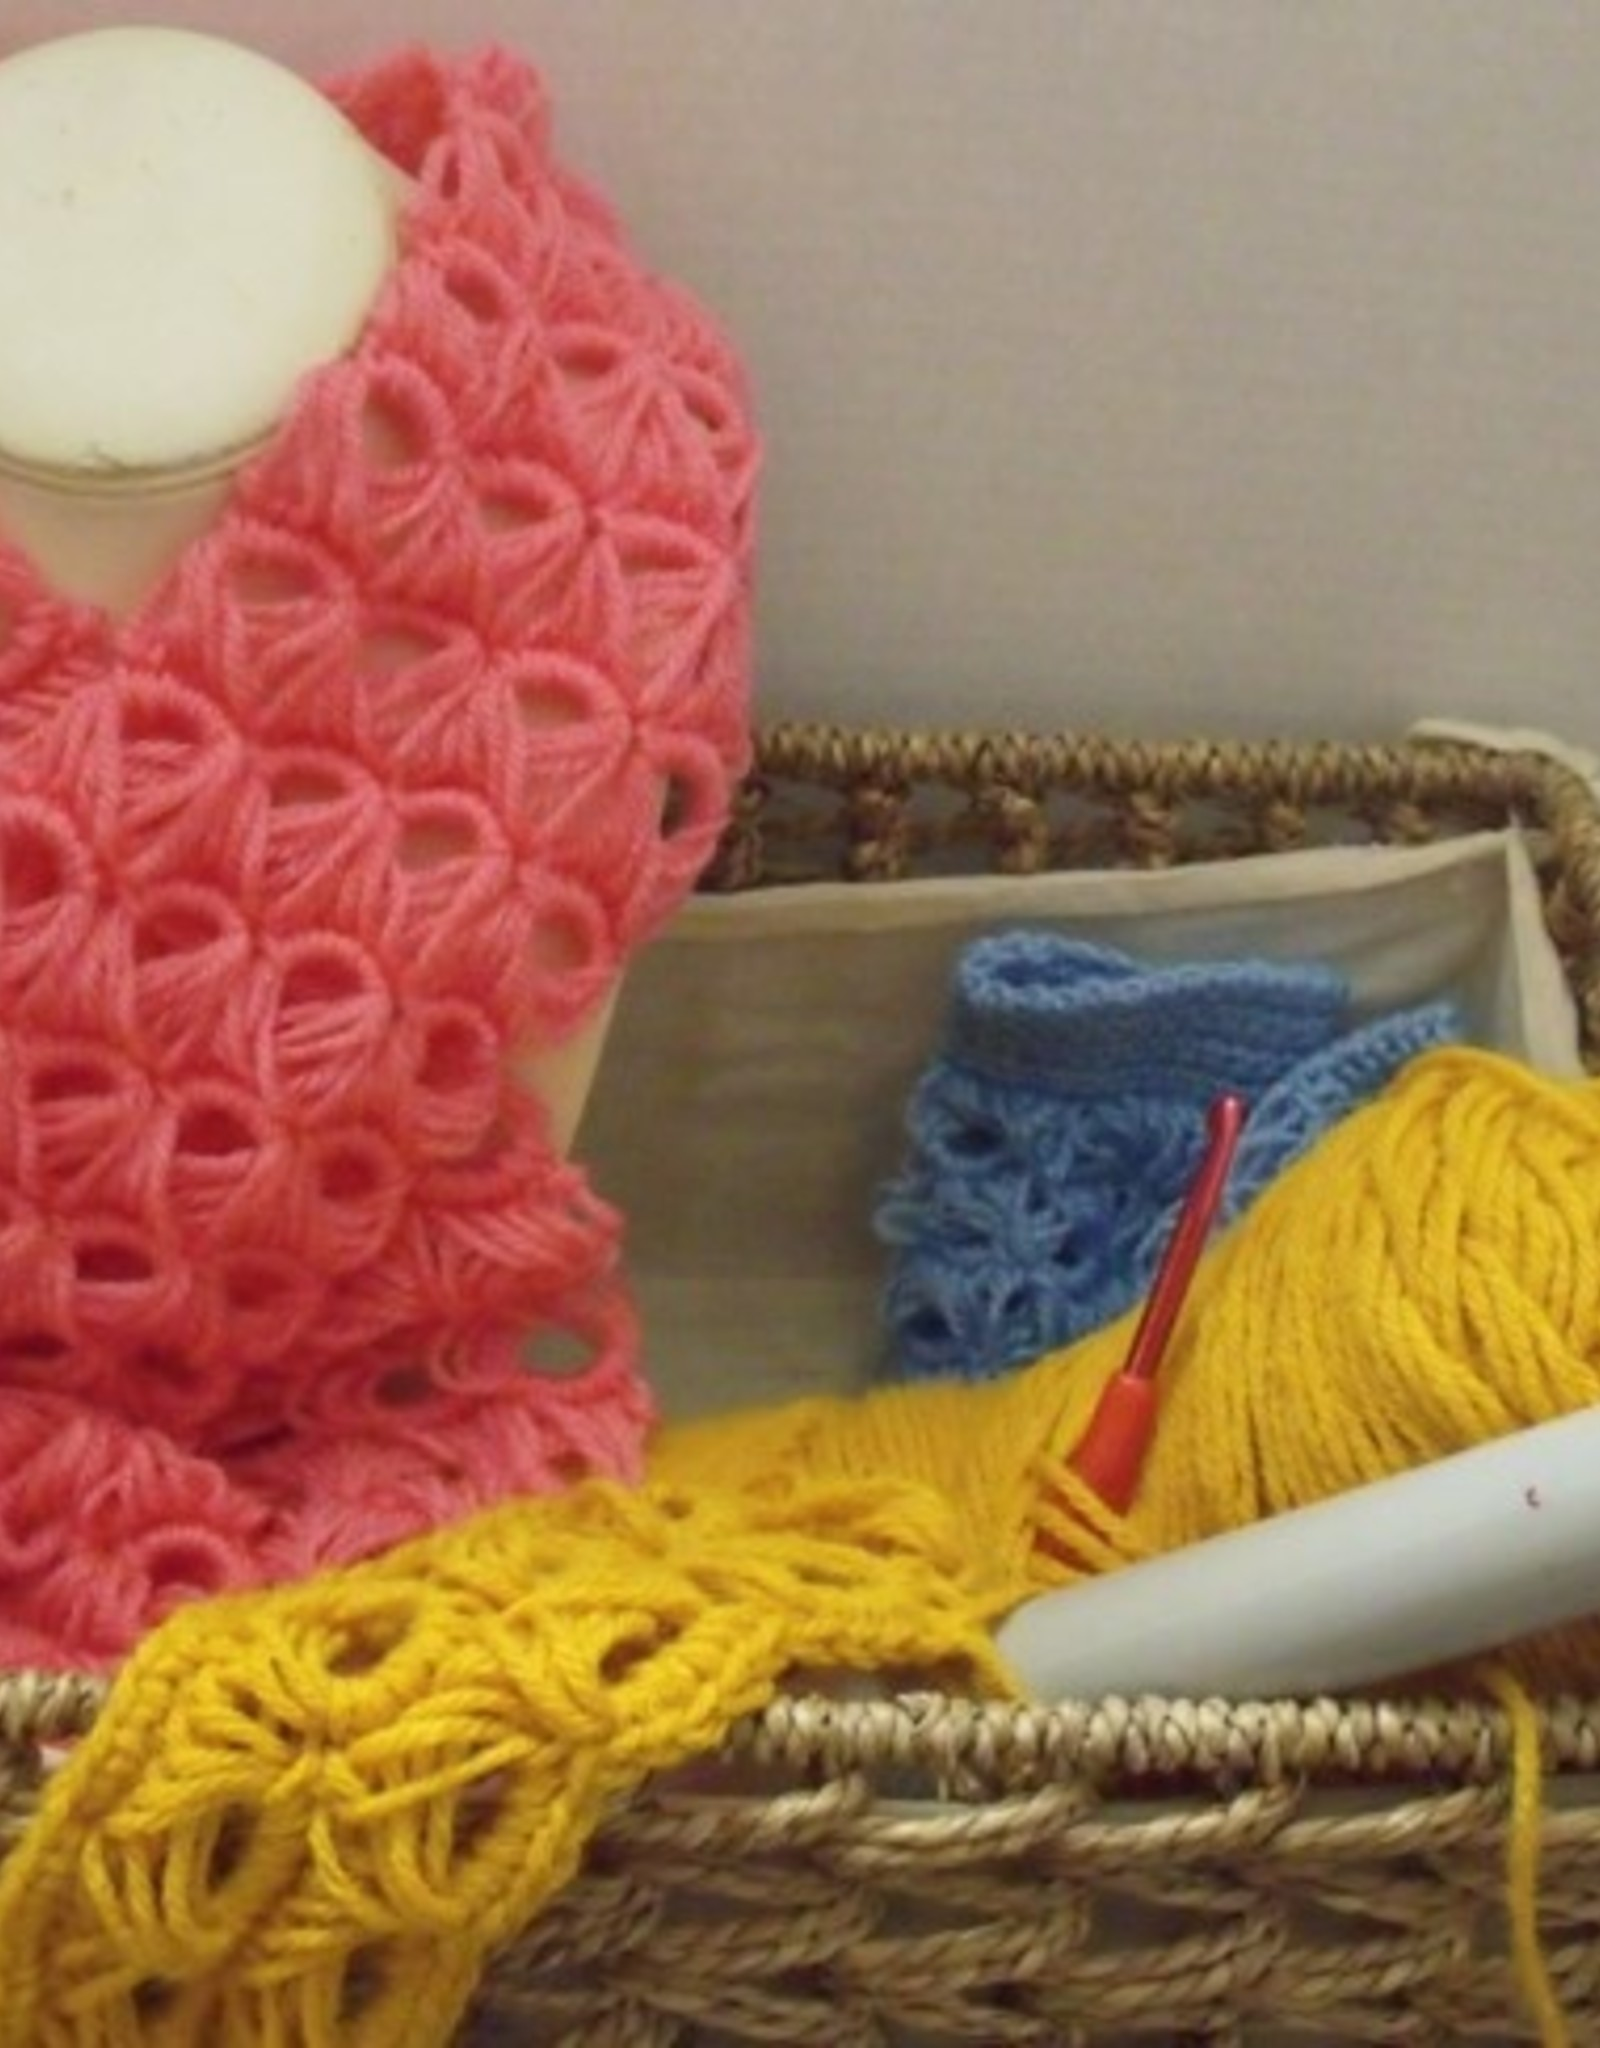 Ruth F Crochet Art Class Broomstick Lace Thurs Jan 28 1- 3:00 pm